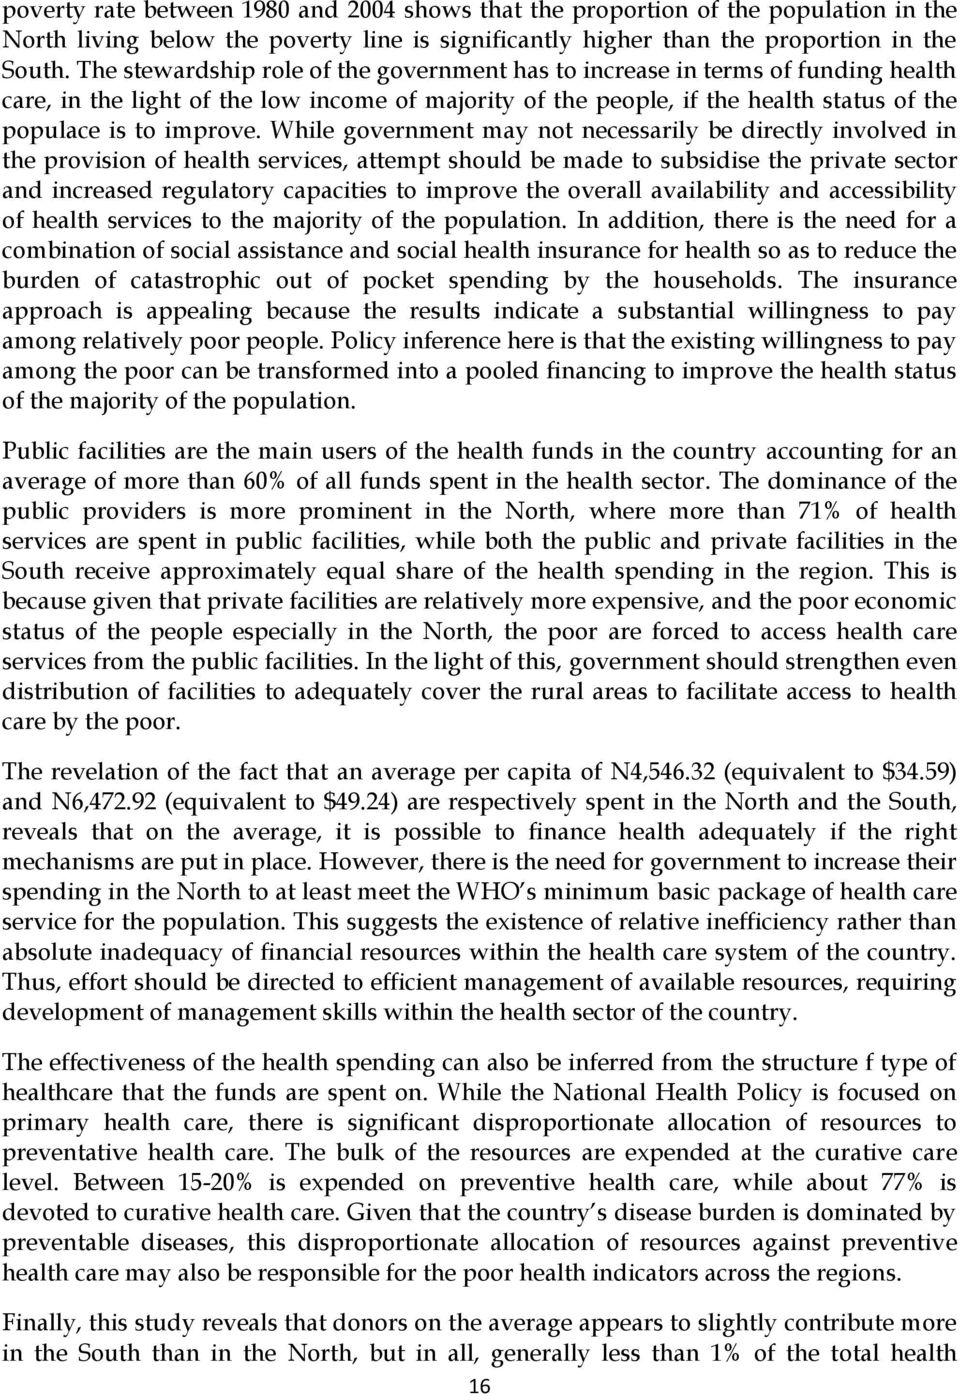 While government may not necessarily be directly involved in the provision of health services, attempt should be made to subsidise the private sector and increased regulatory capacities to improve